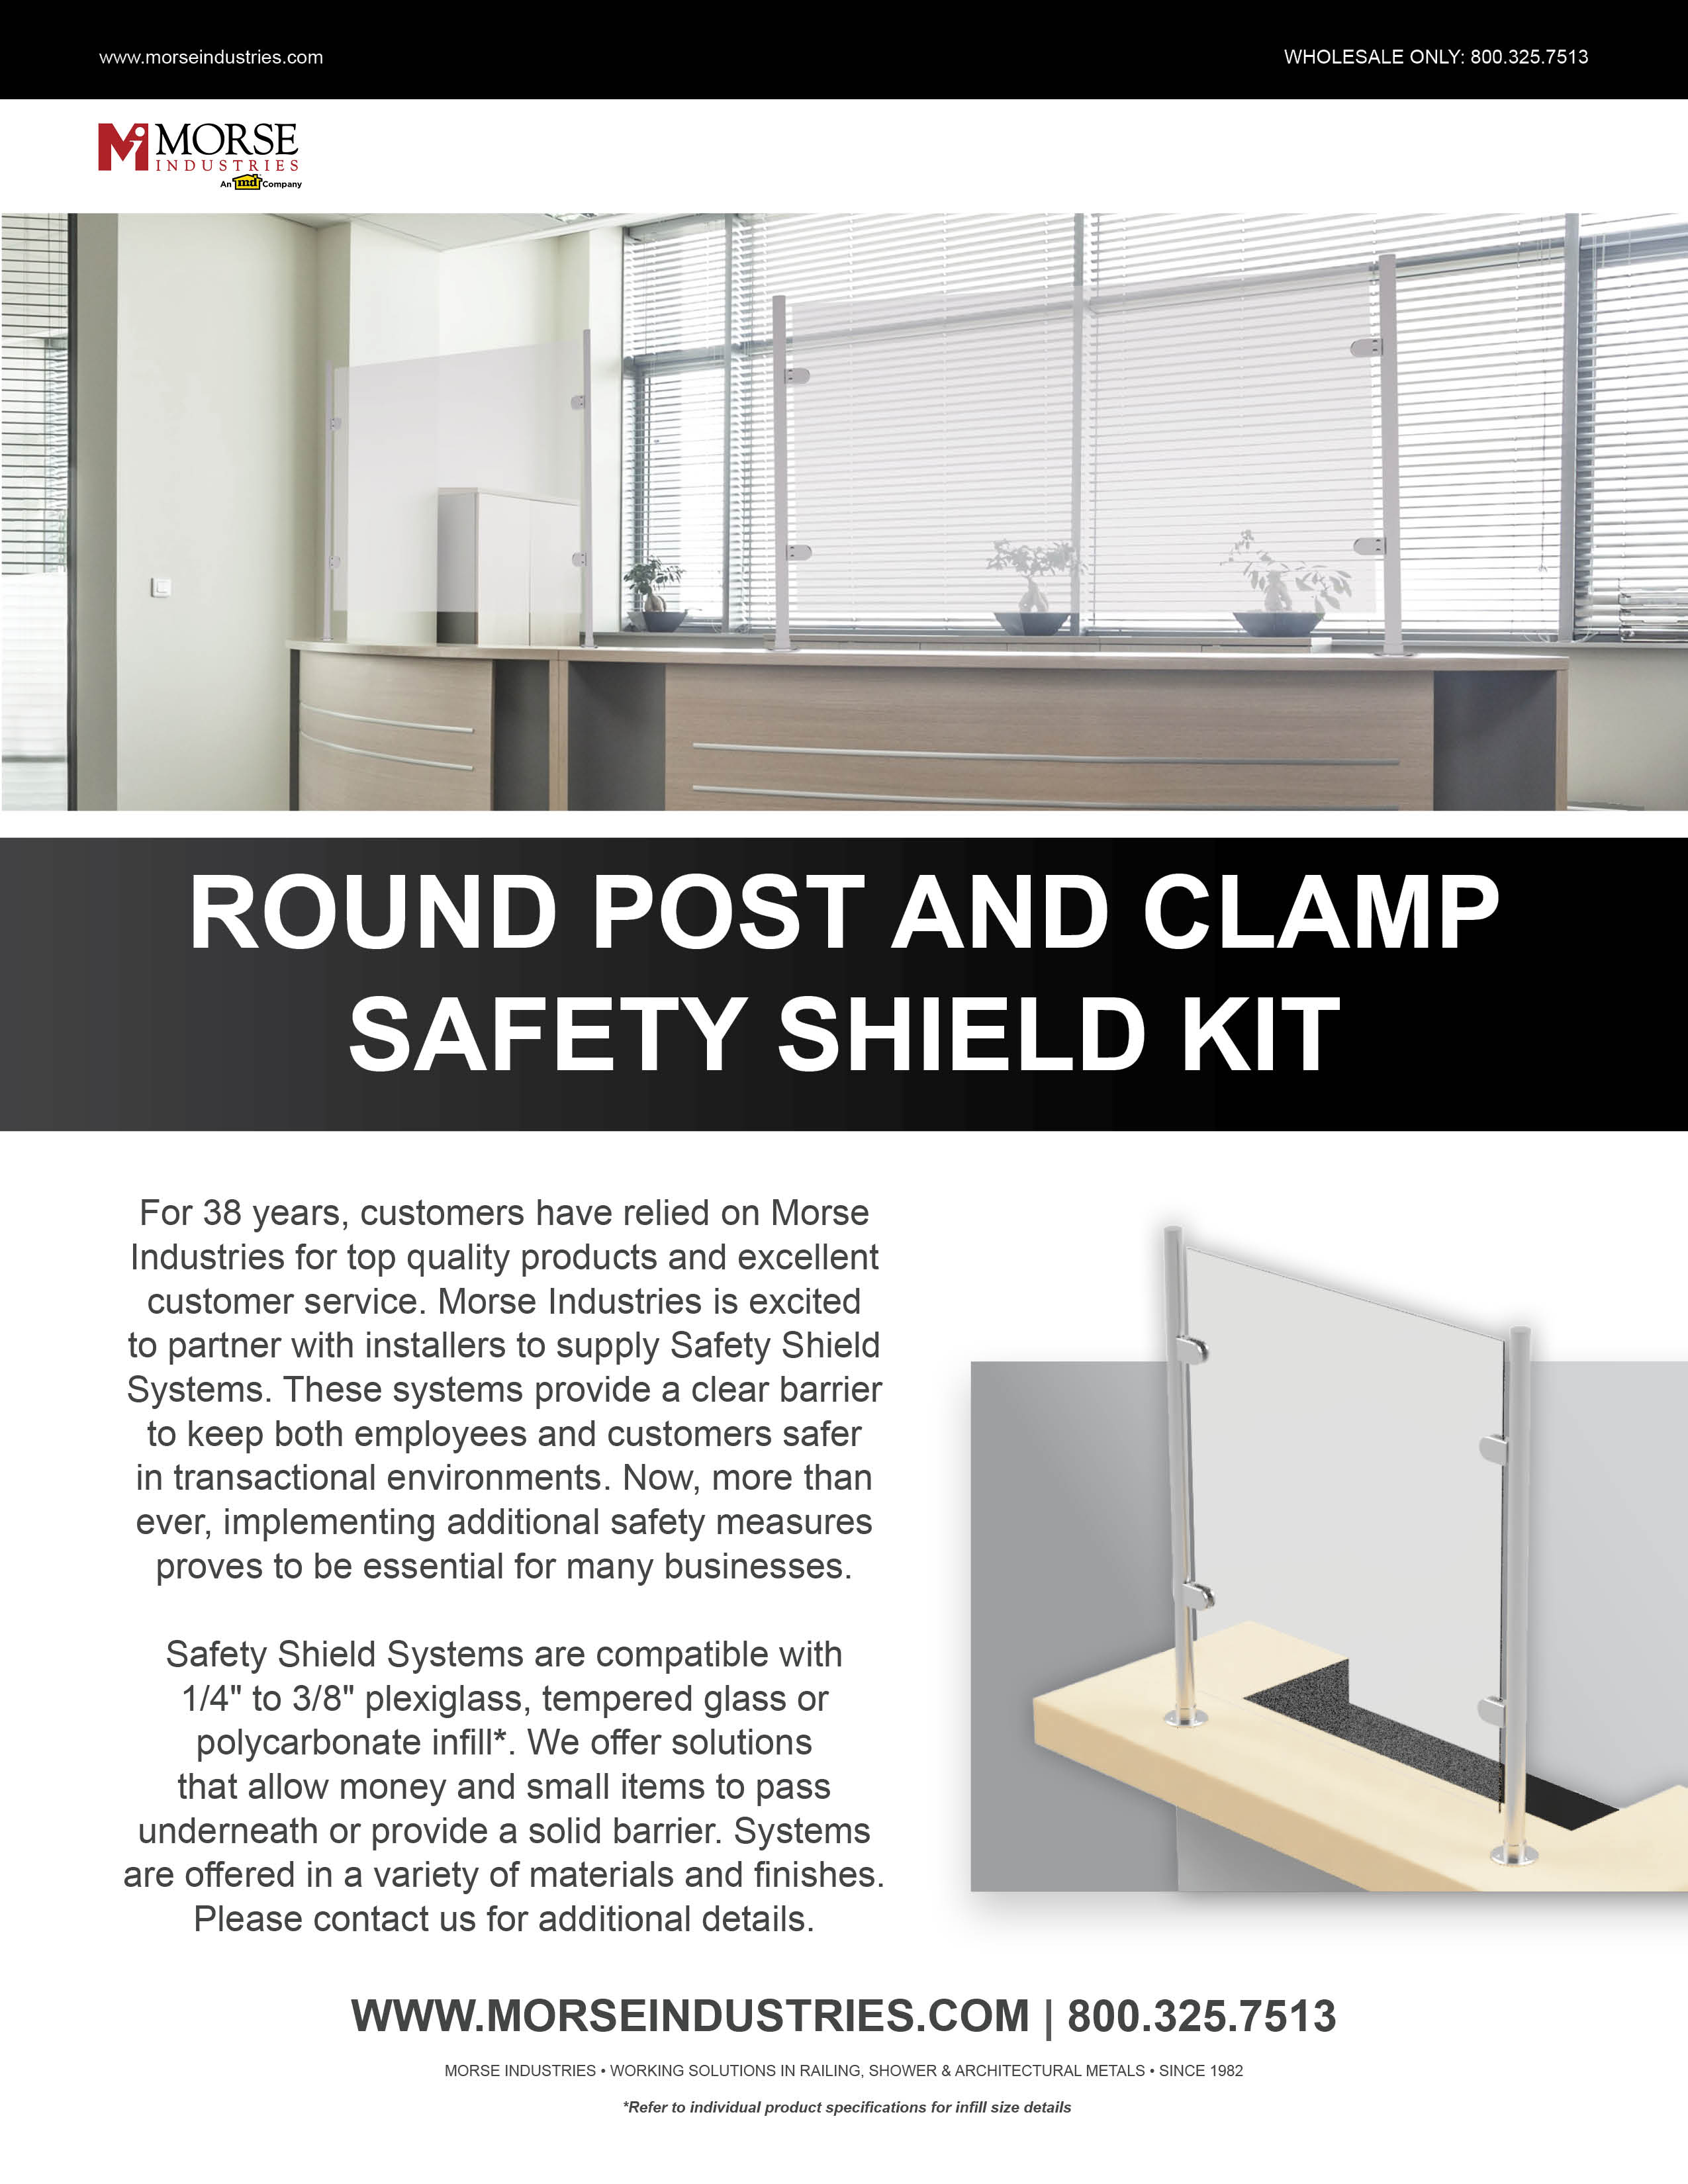 Round Post and Clamp Safety Shield